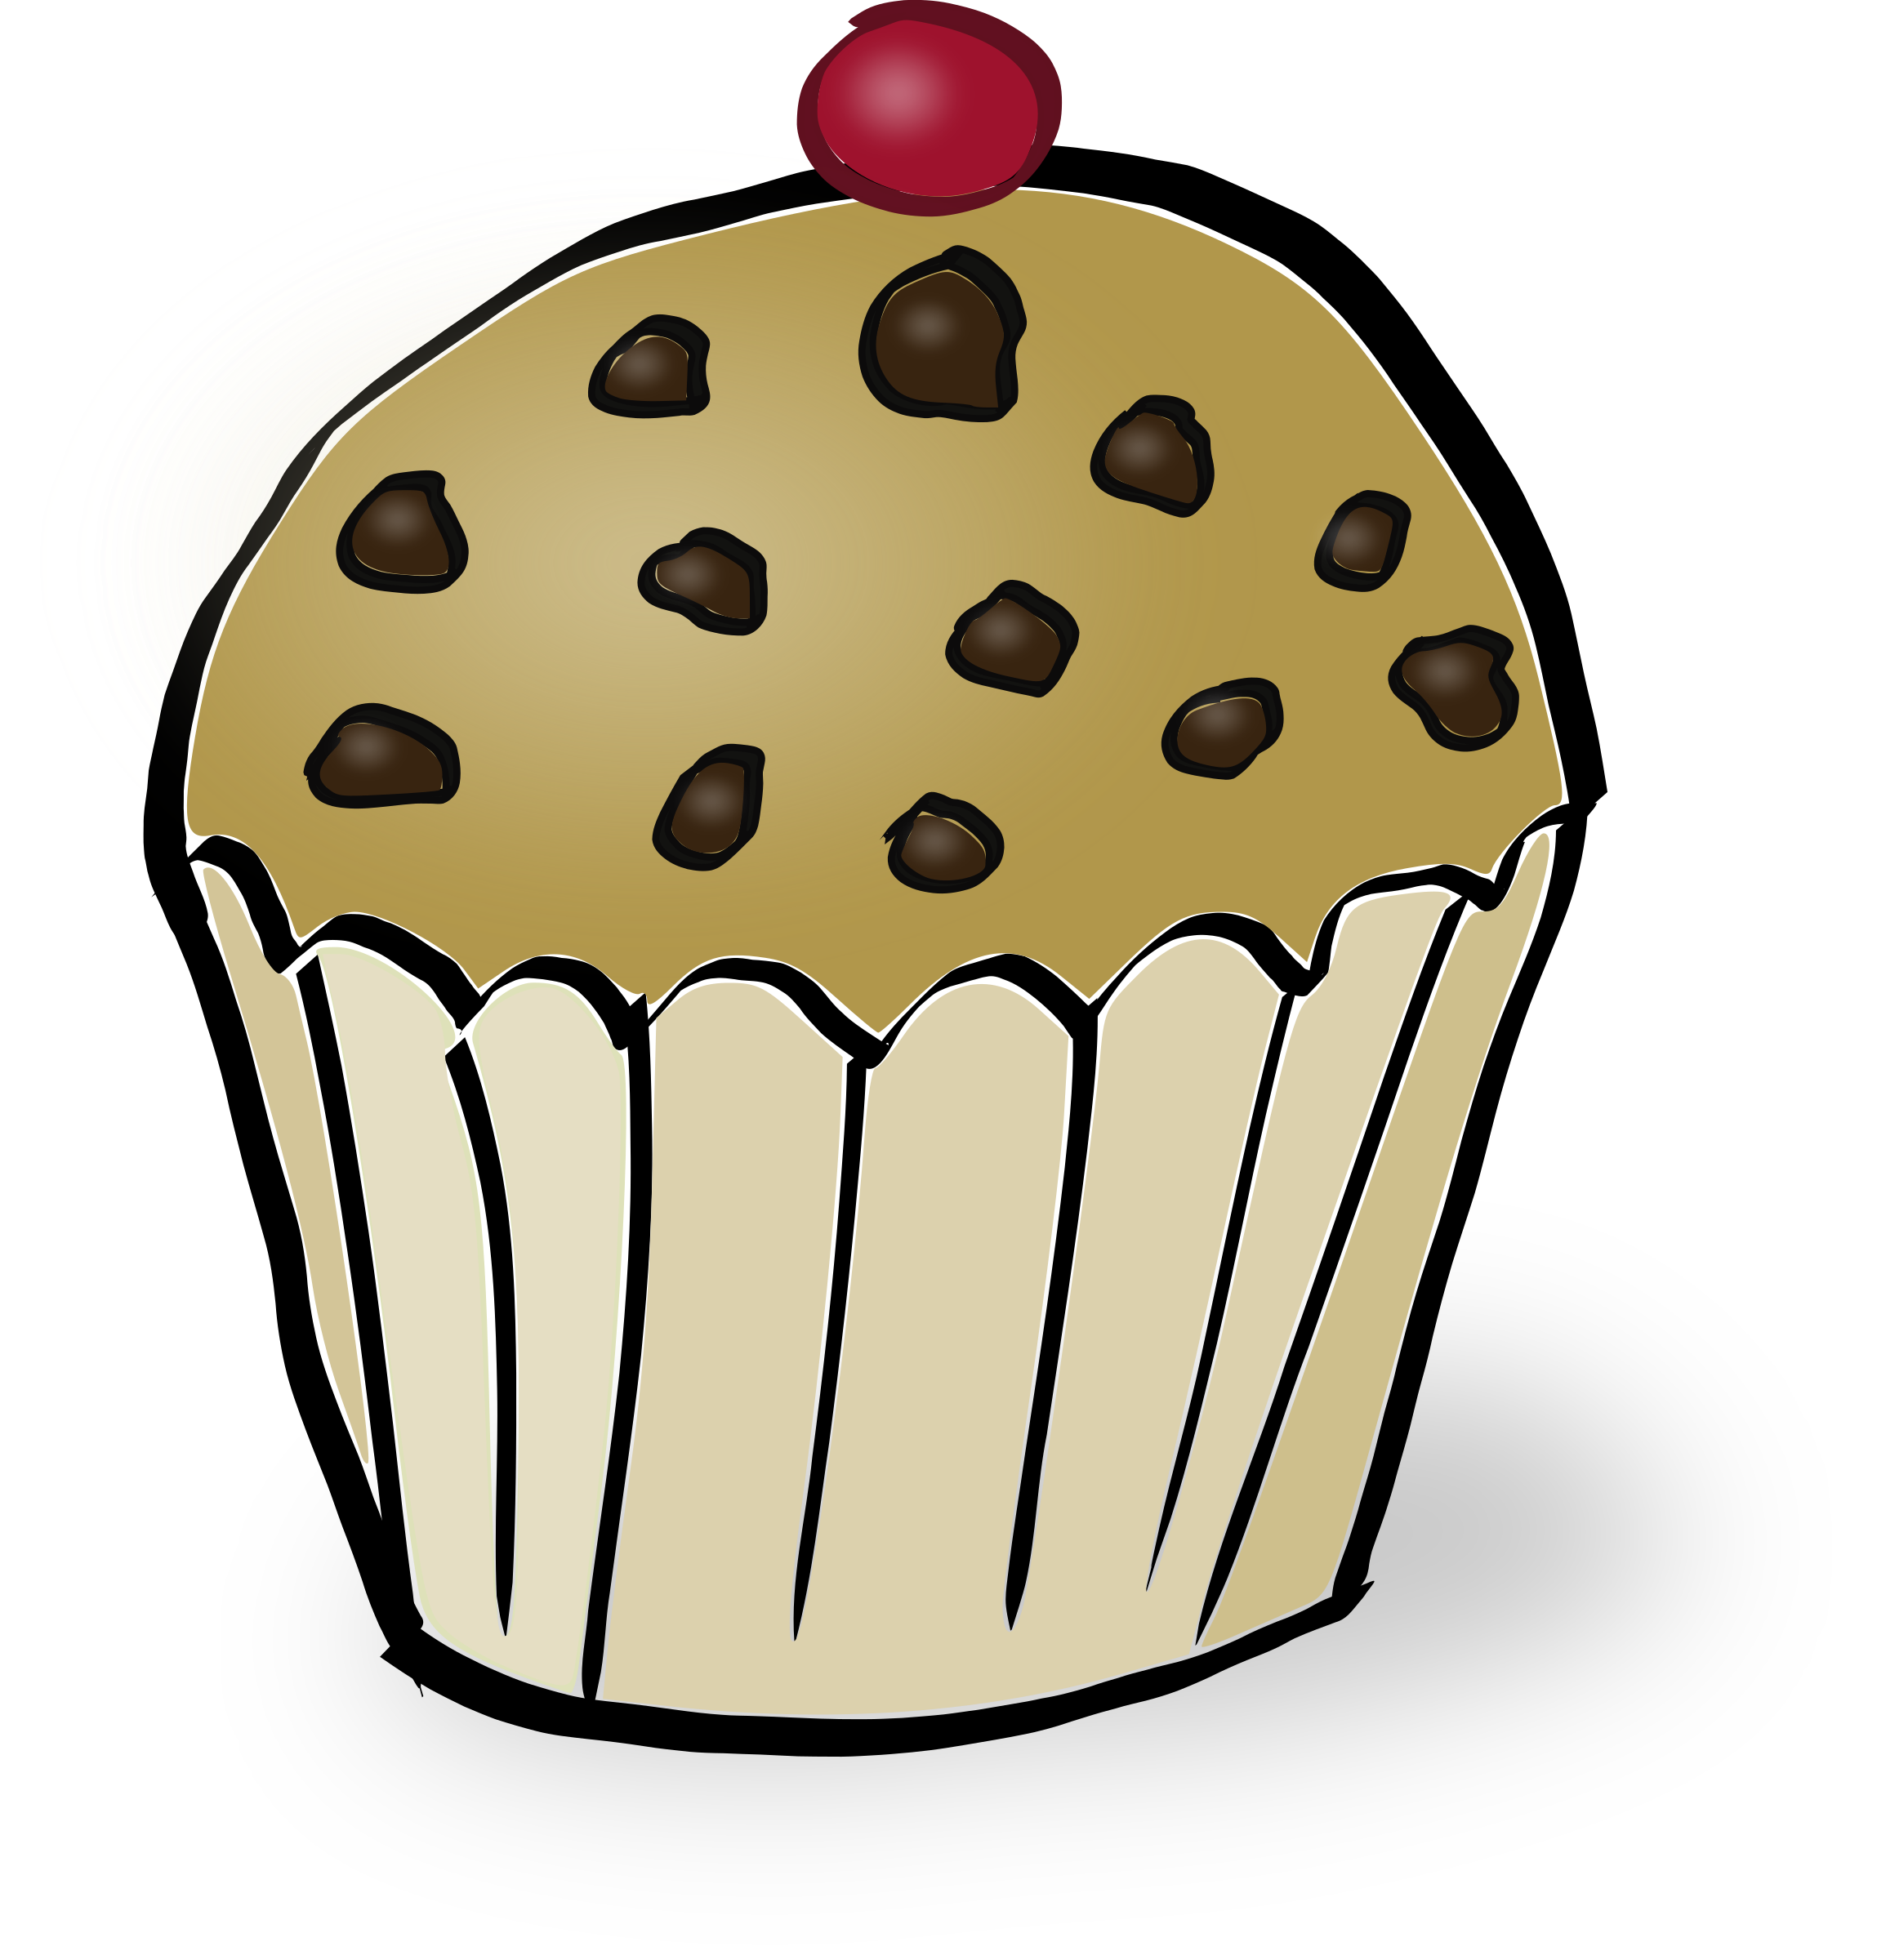 Blueberry Muffin clipart transparent Chips muffin Muffin Chocolate chip